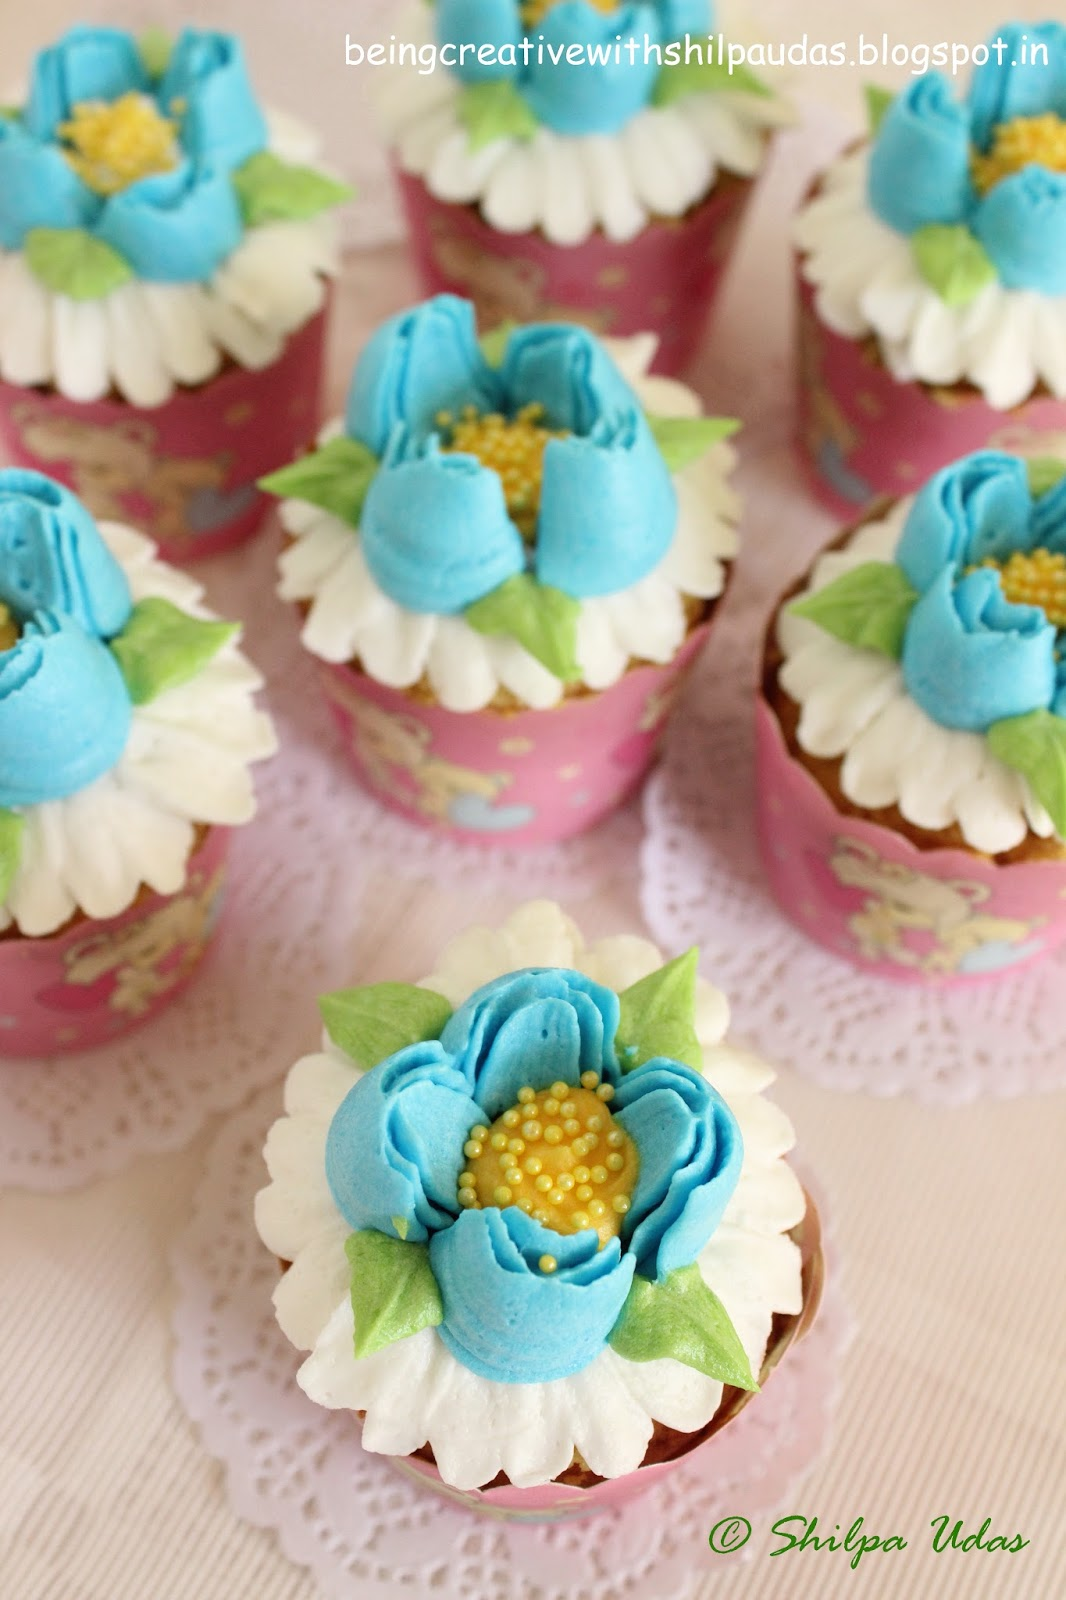 Beauteous cupcakes being creative with shilpa udas with a beautiful home we had some relatives visiting us and when anyone visits my home they are already happy since they know that i would be treating izmirmasajfo